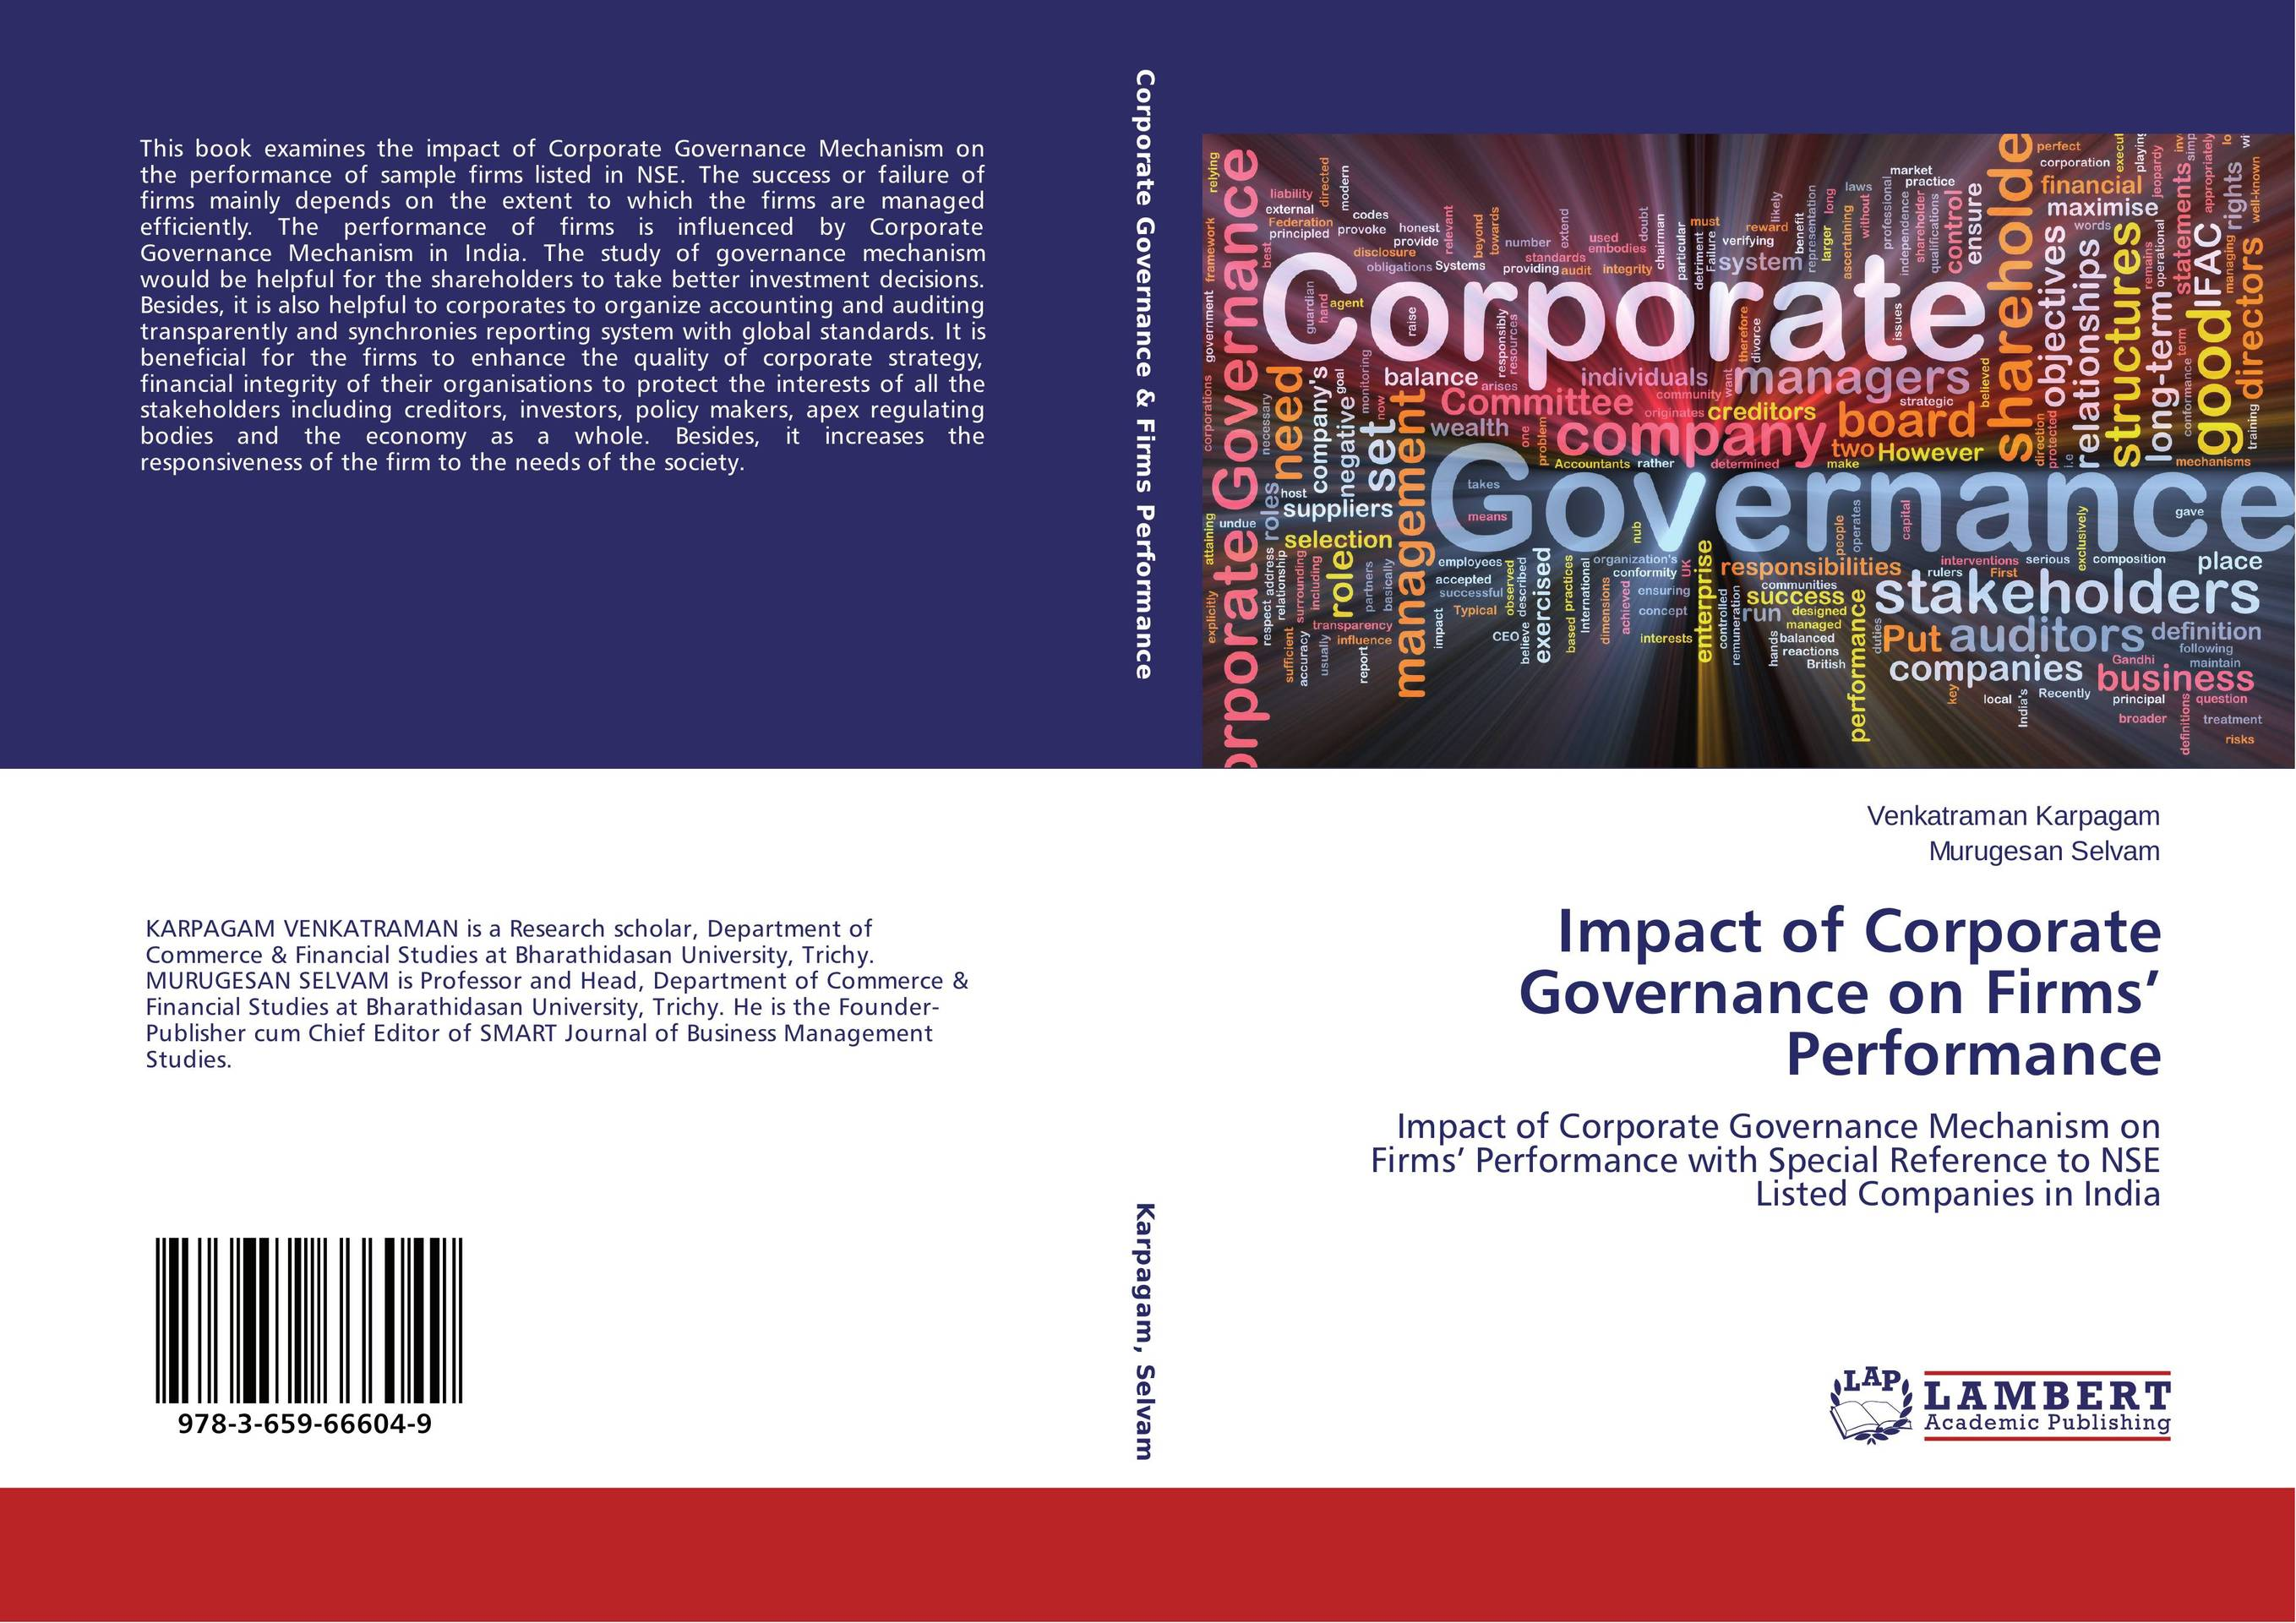 relationship between corporate social performance and firm financial performance Most studies have tried to test, largely in samples of multiple industries, the relationship between corporate social performance (csp) and corporate financial performance (cfp) these analyses, however, have produced conflicting results and any attempt to give a generalized and coherent conclusion has proved inadequate.